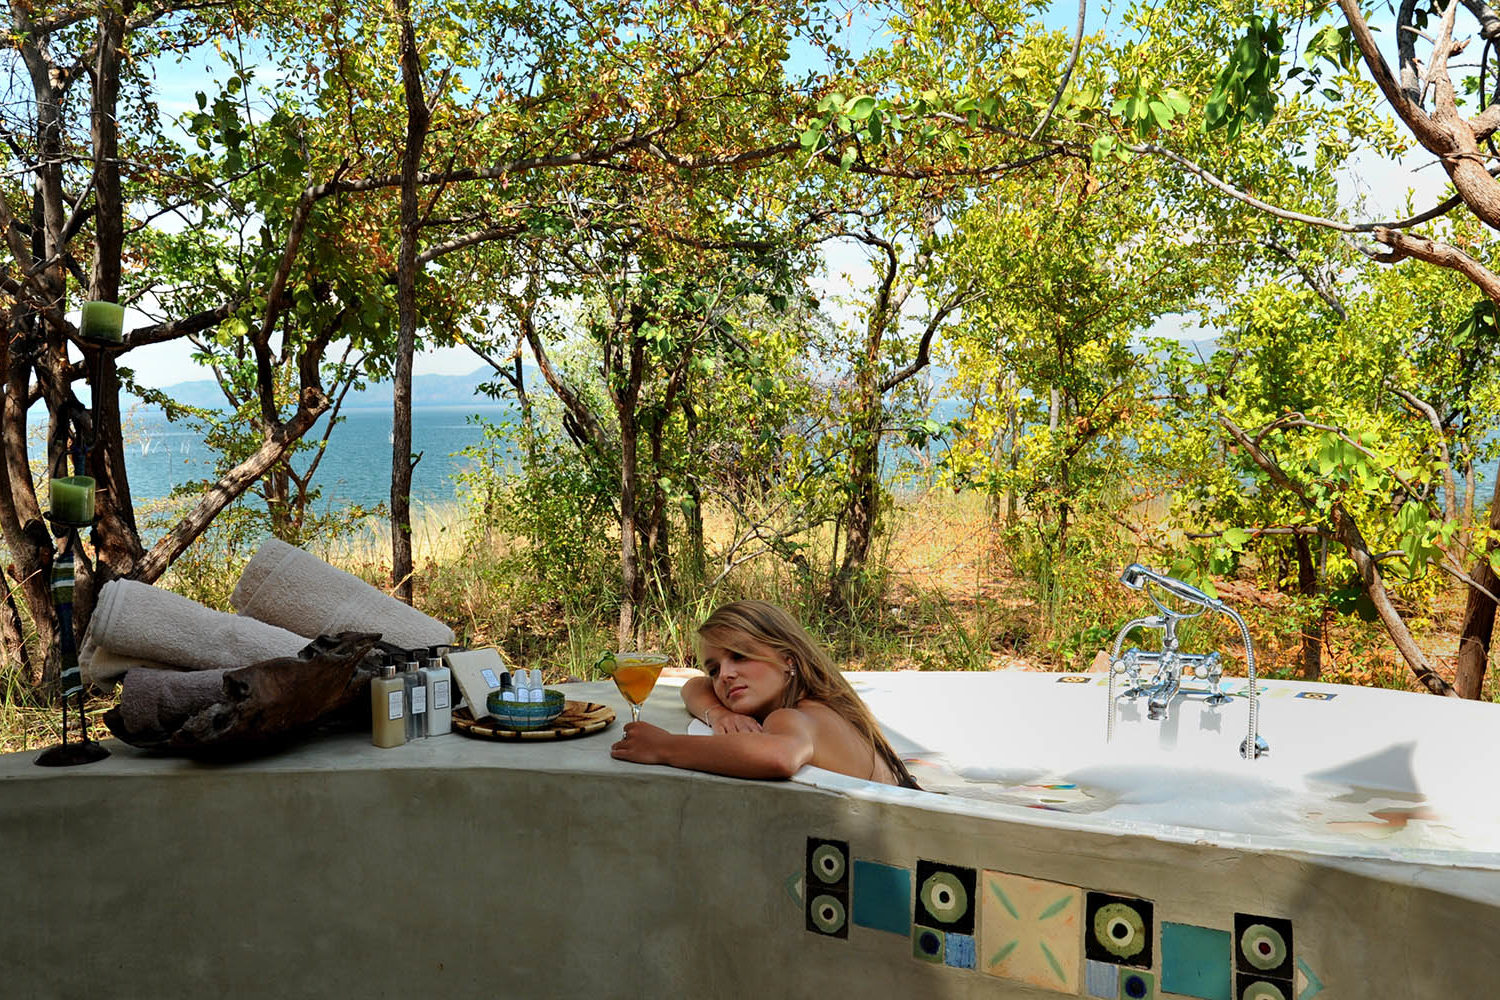 changa safari camp lake-kariba-zimbabwe-zambia-in-style-authentic-safari-experience-outdoor-bath-with-a-view